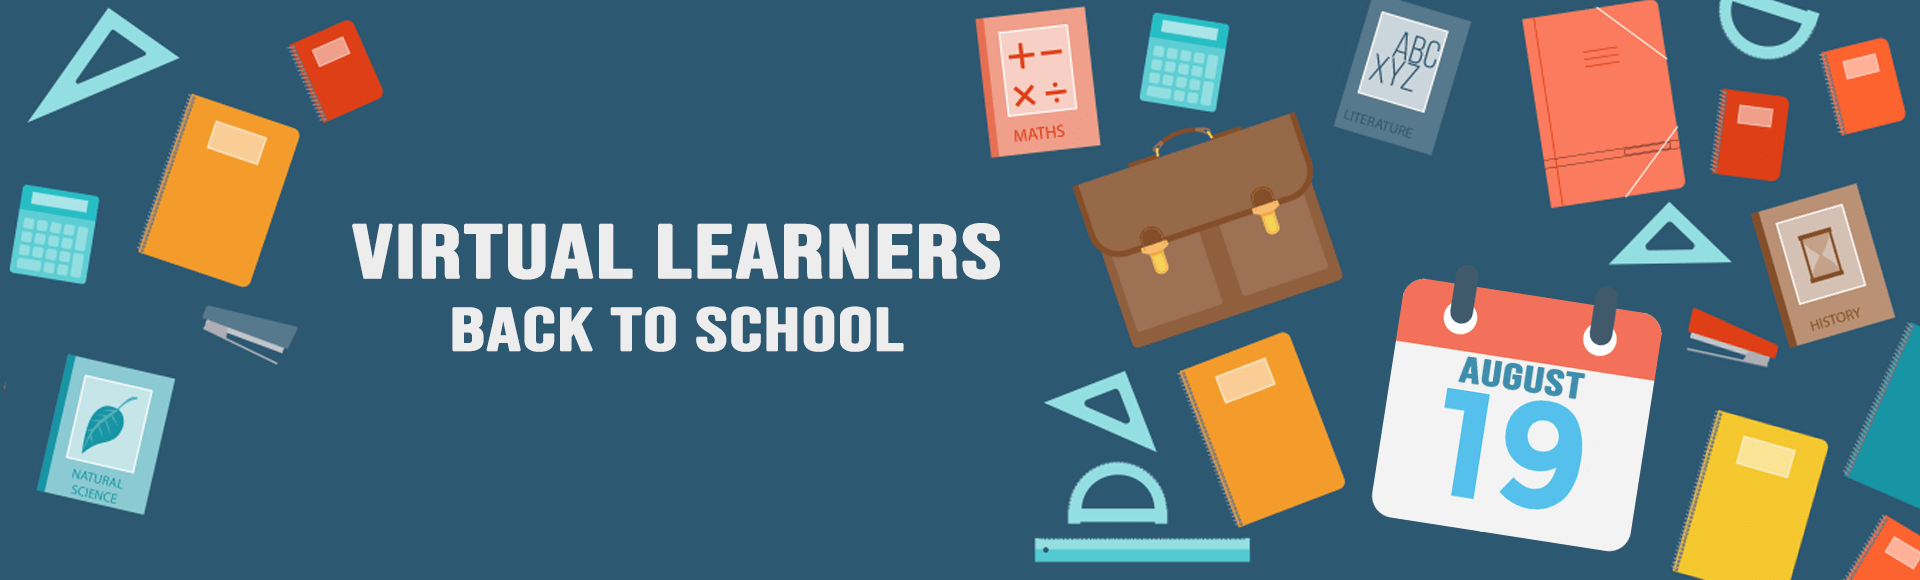 Back to School – Virtual Learners